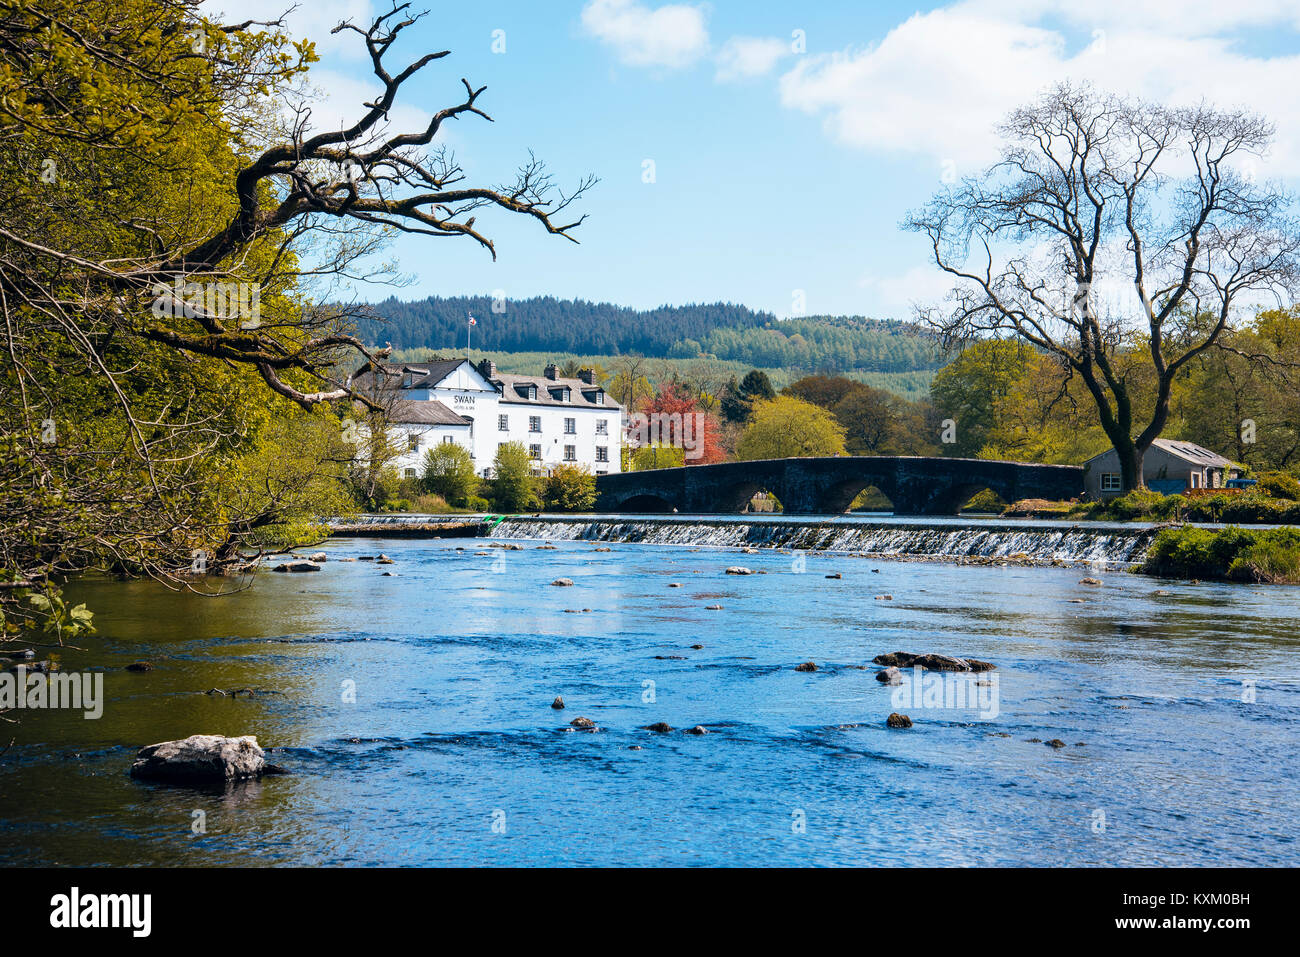 River Leven and Swan Hotel at Newby Bridge in the English Lake District - Stock Image